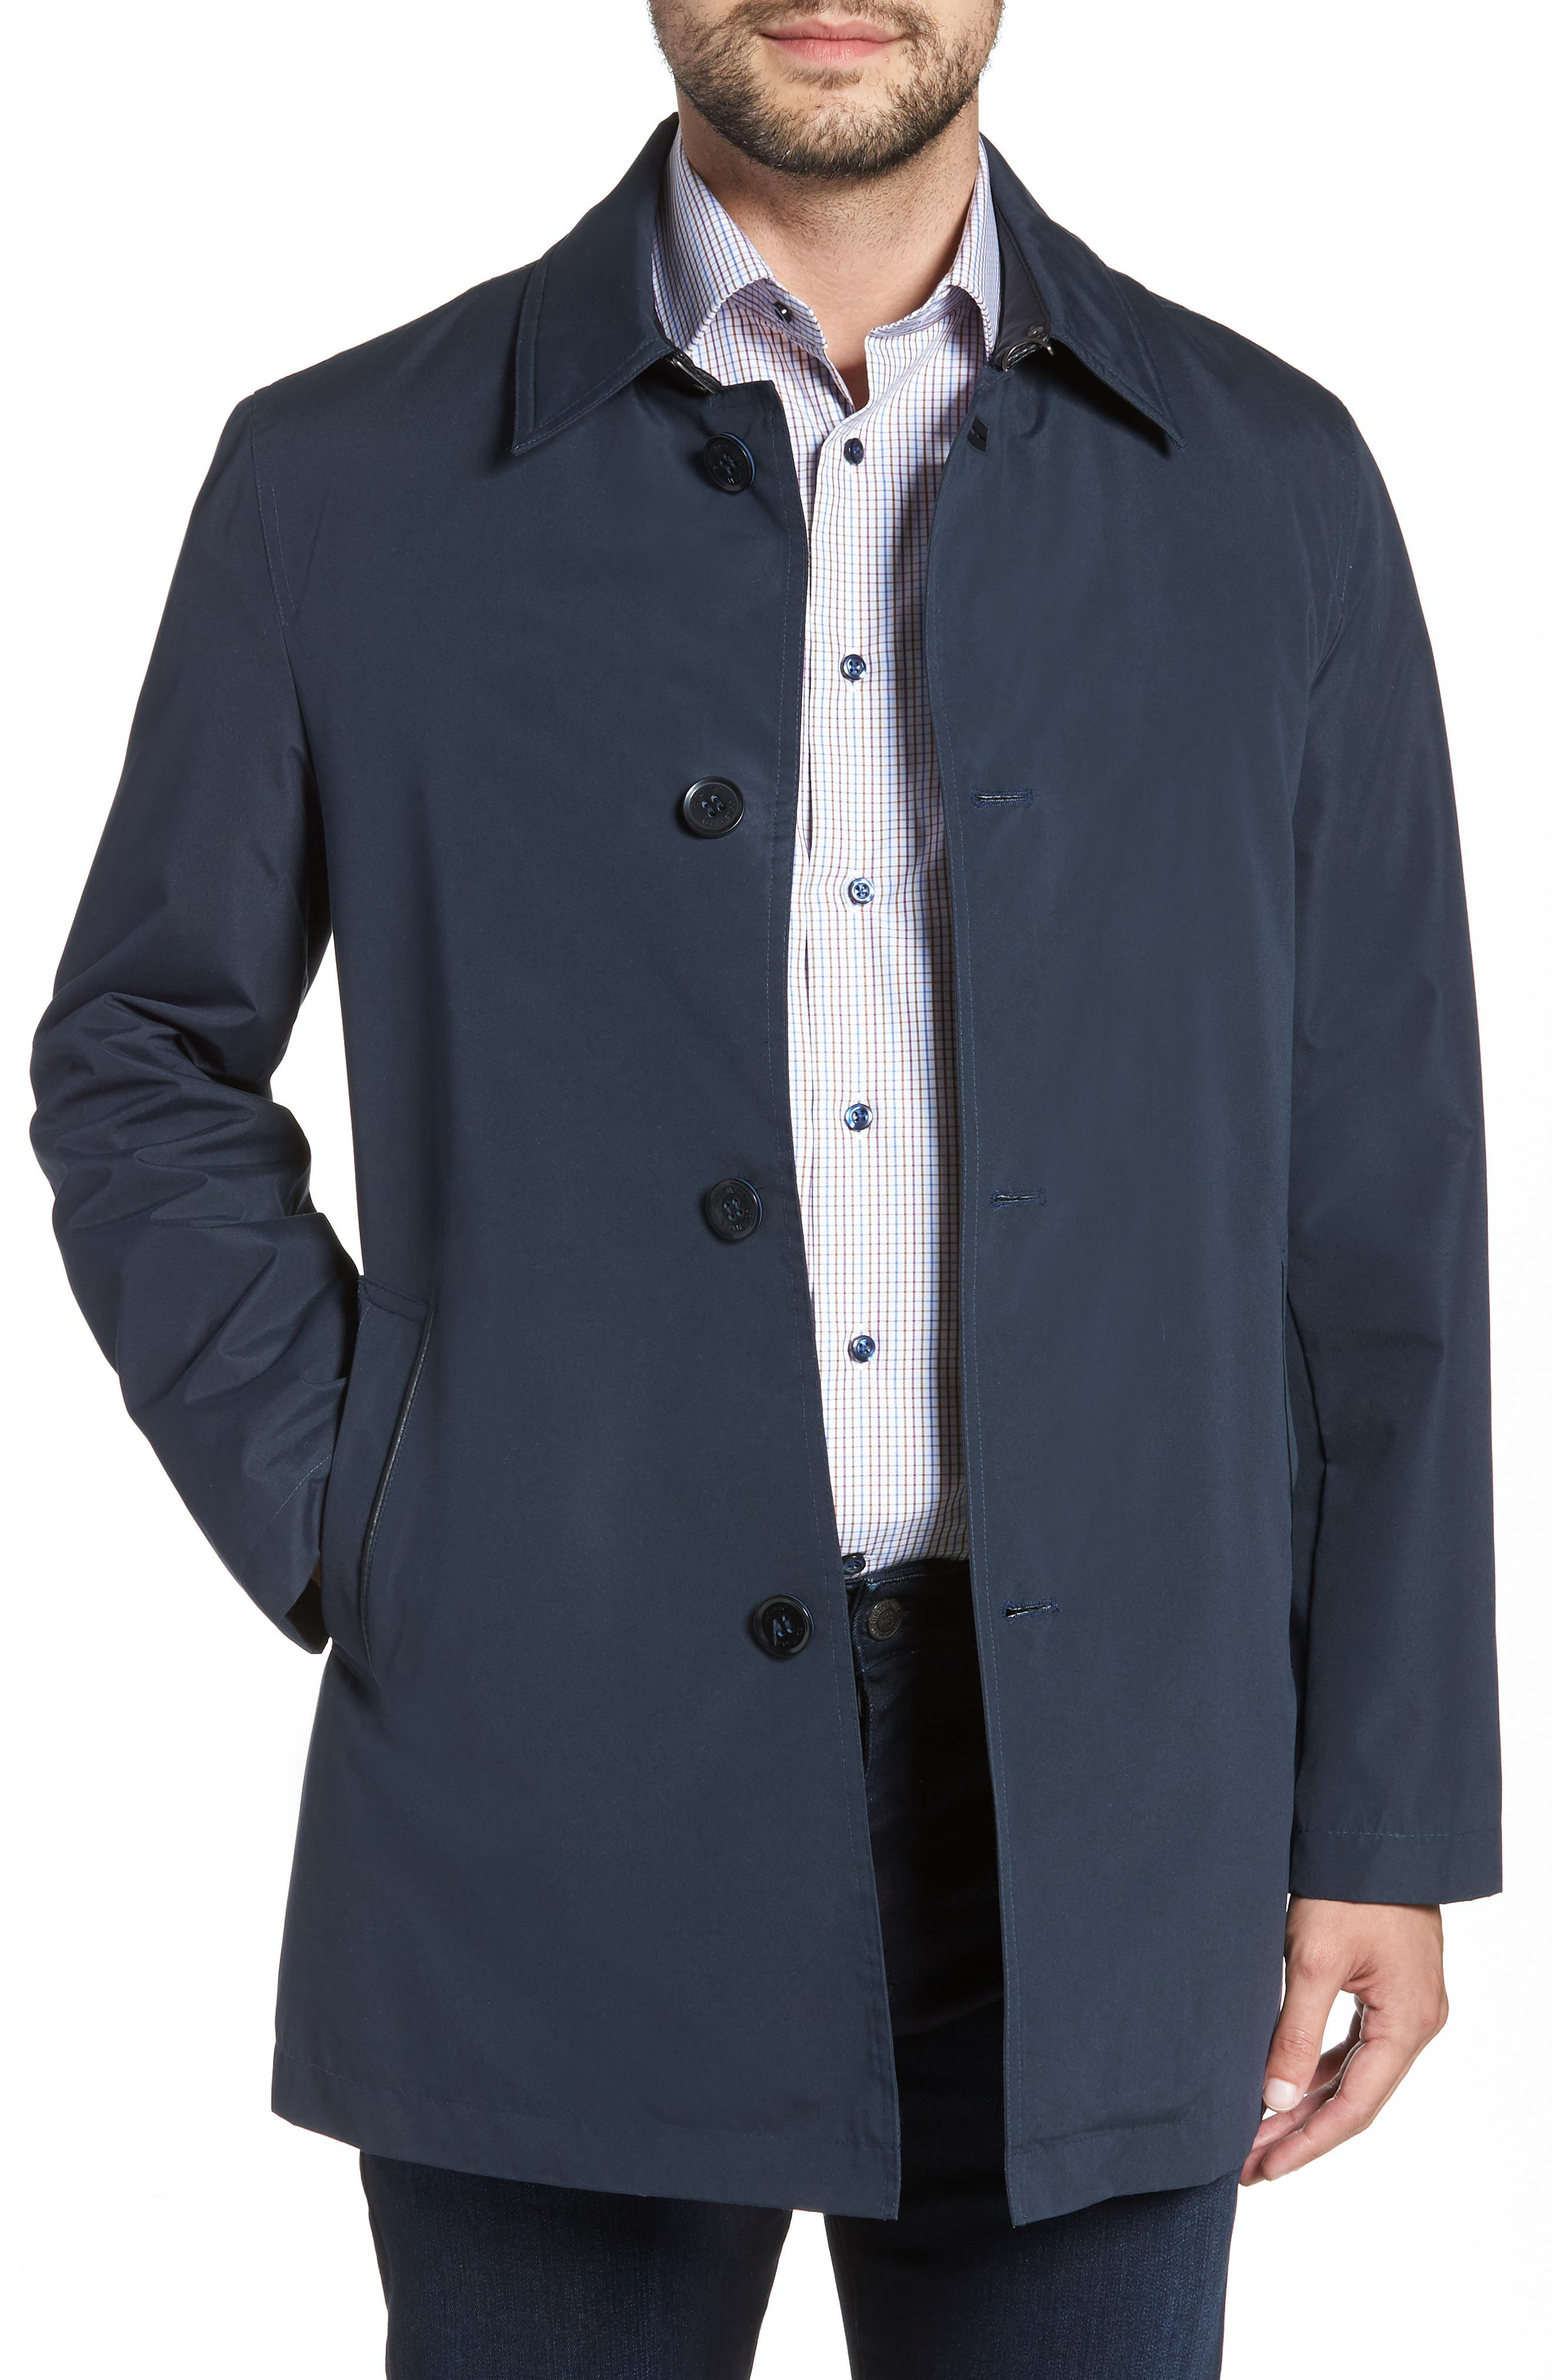 Cole Haan Water Resistant Car Coat,                             Main thumbnail 1, color,                             NAVY